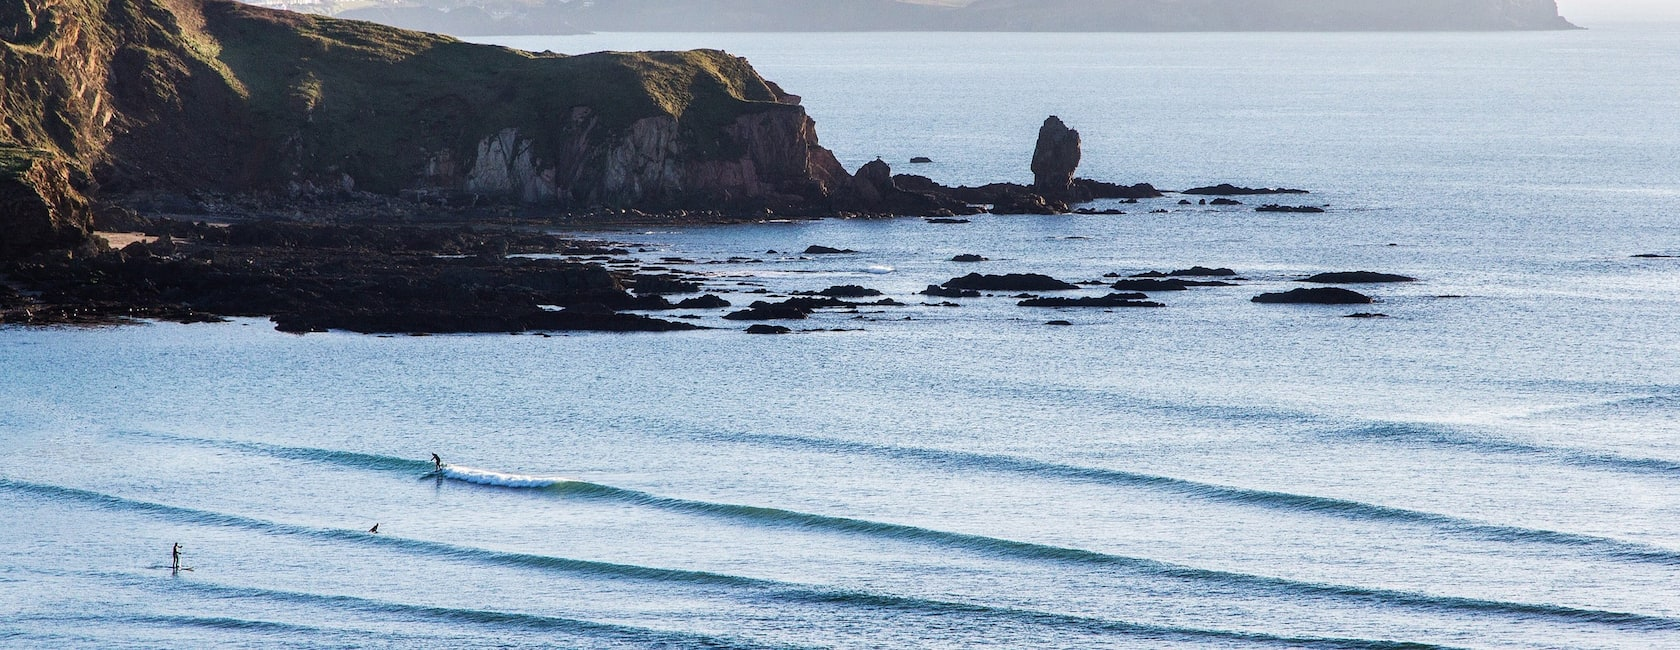 Holiday rentals in Bantham